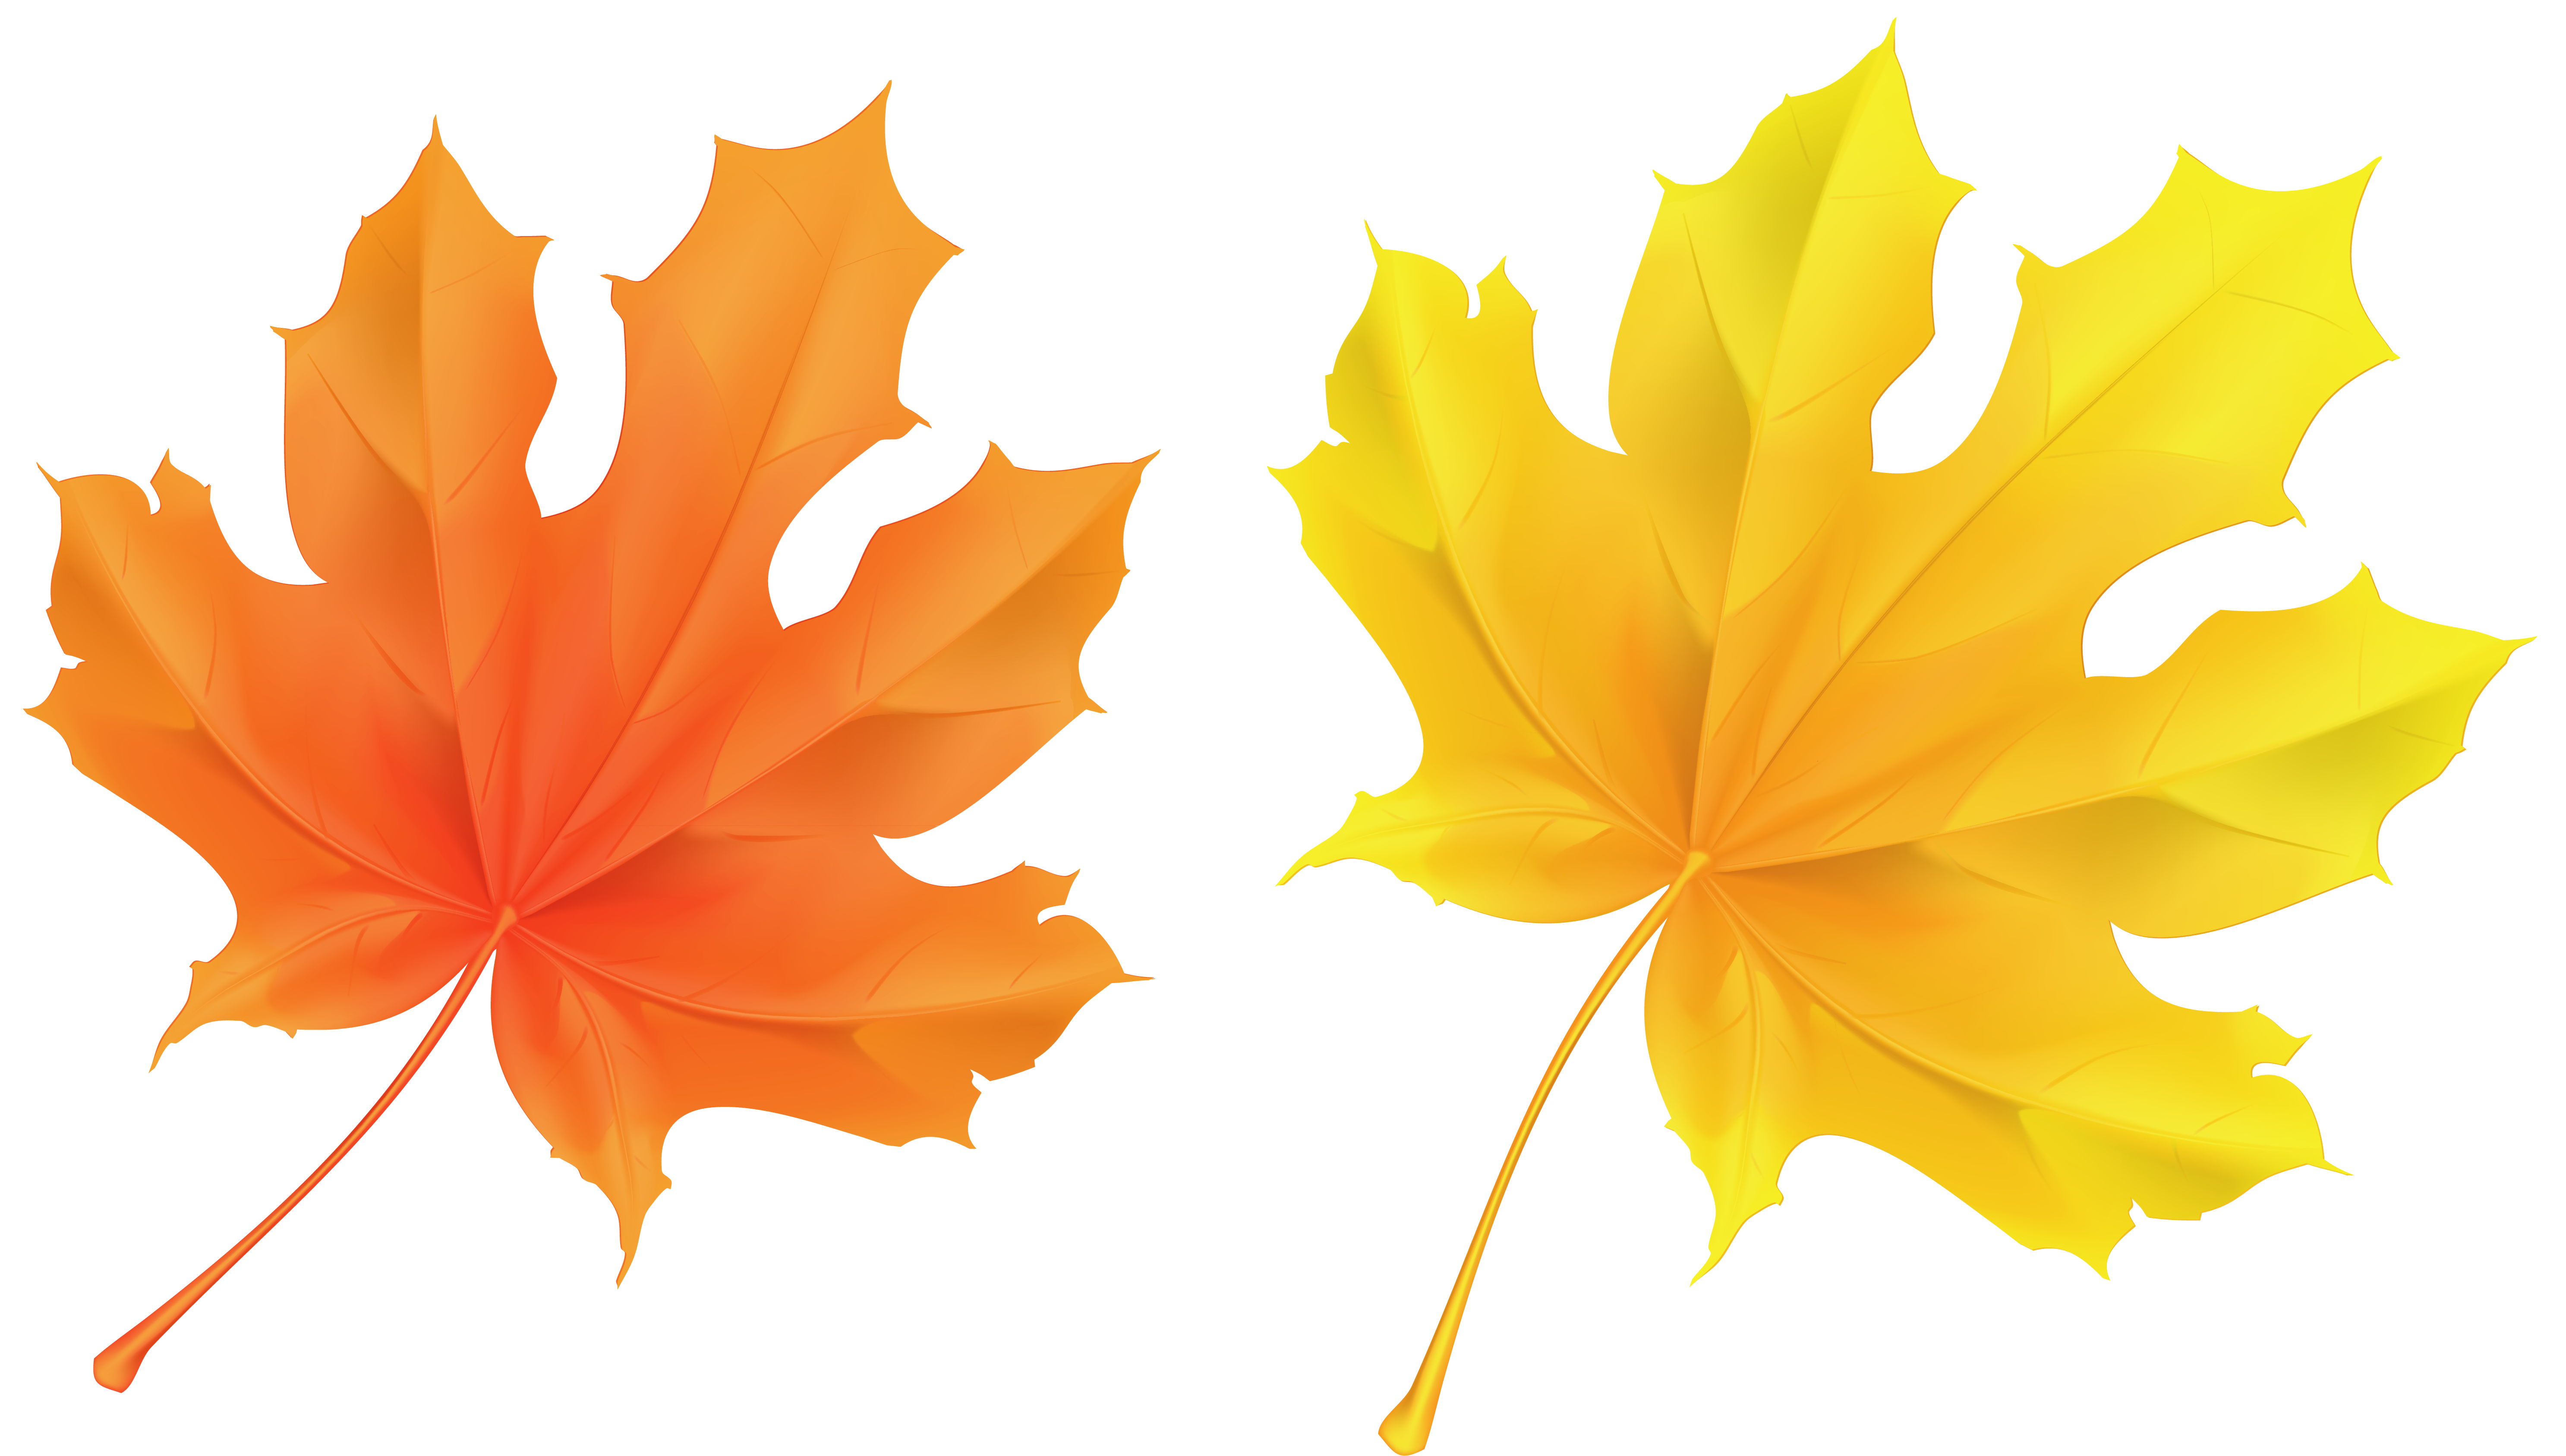 Transparent Yellow and Orange Leaves Picture.